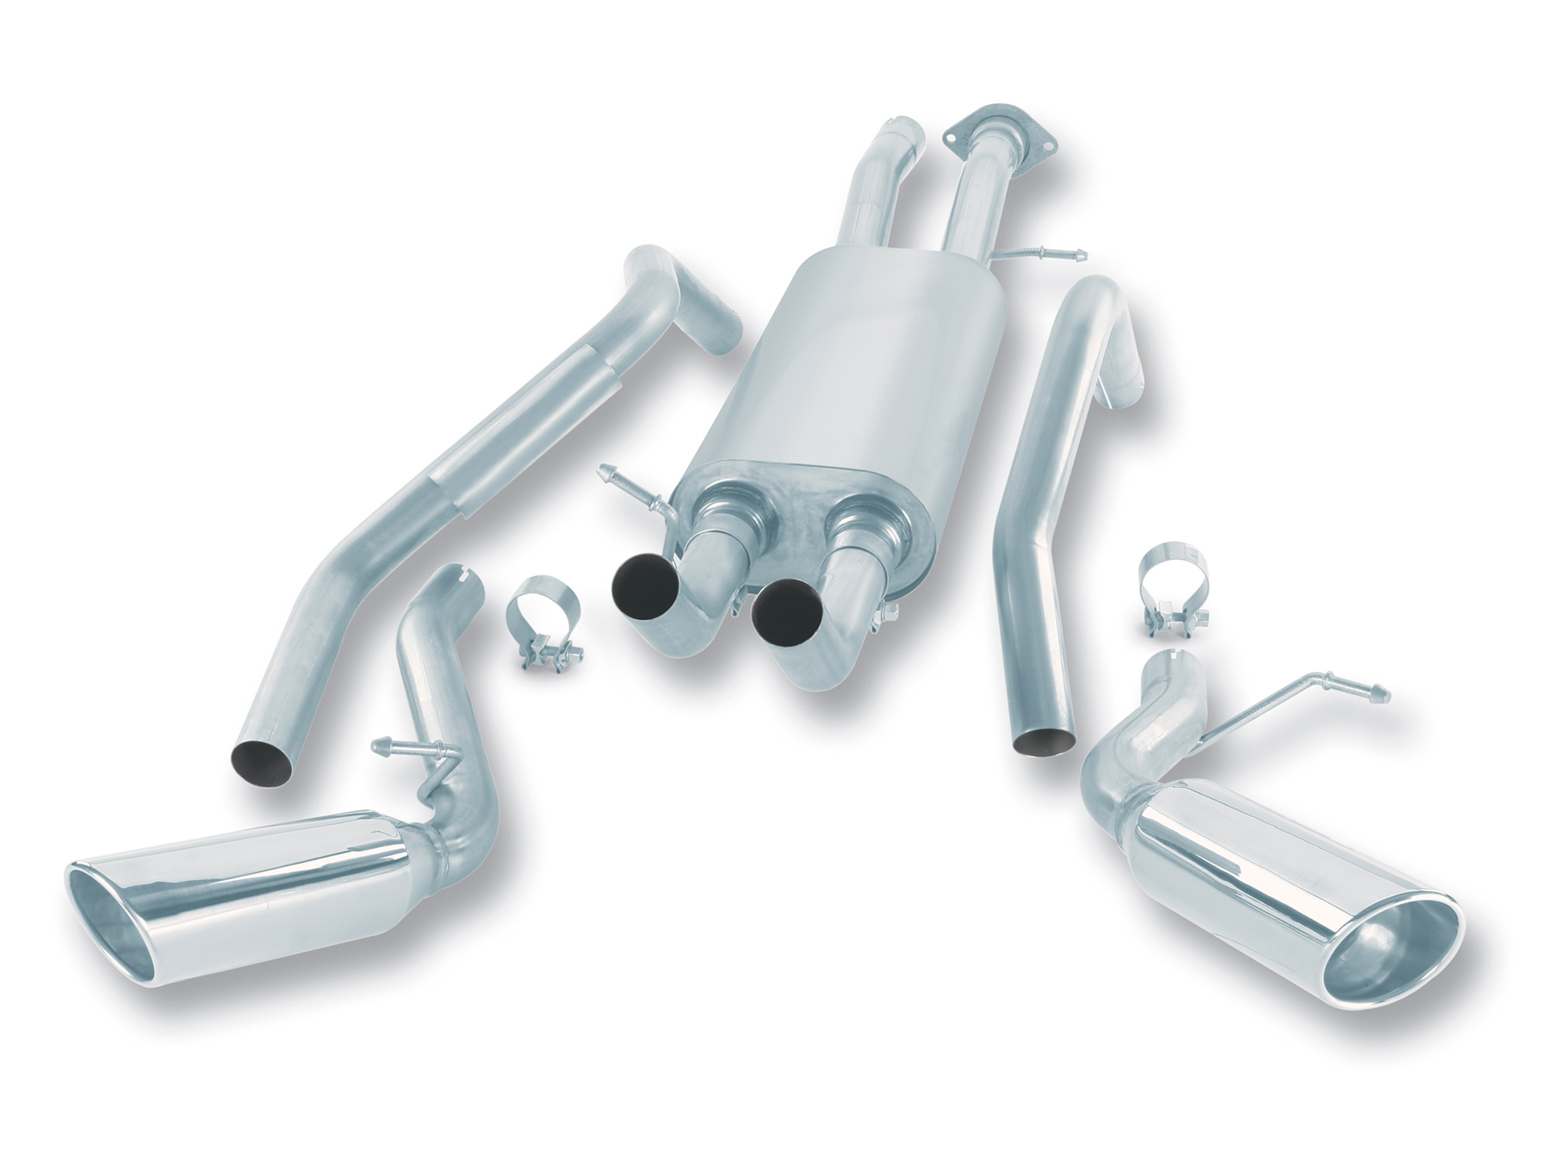 "Cadillac Escalade 6.0l 2002-2004 Borla 2.5"", 2.25"" Cat-Back Exhaust System - Single Round Rolled Angle-Cut Lined Resonated"